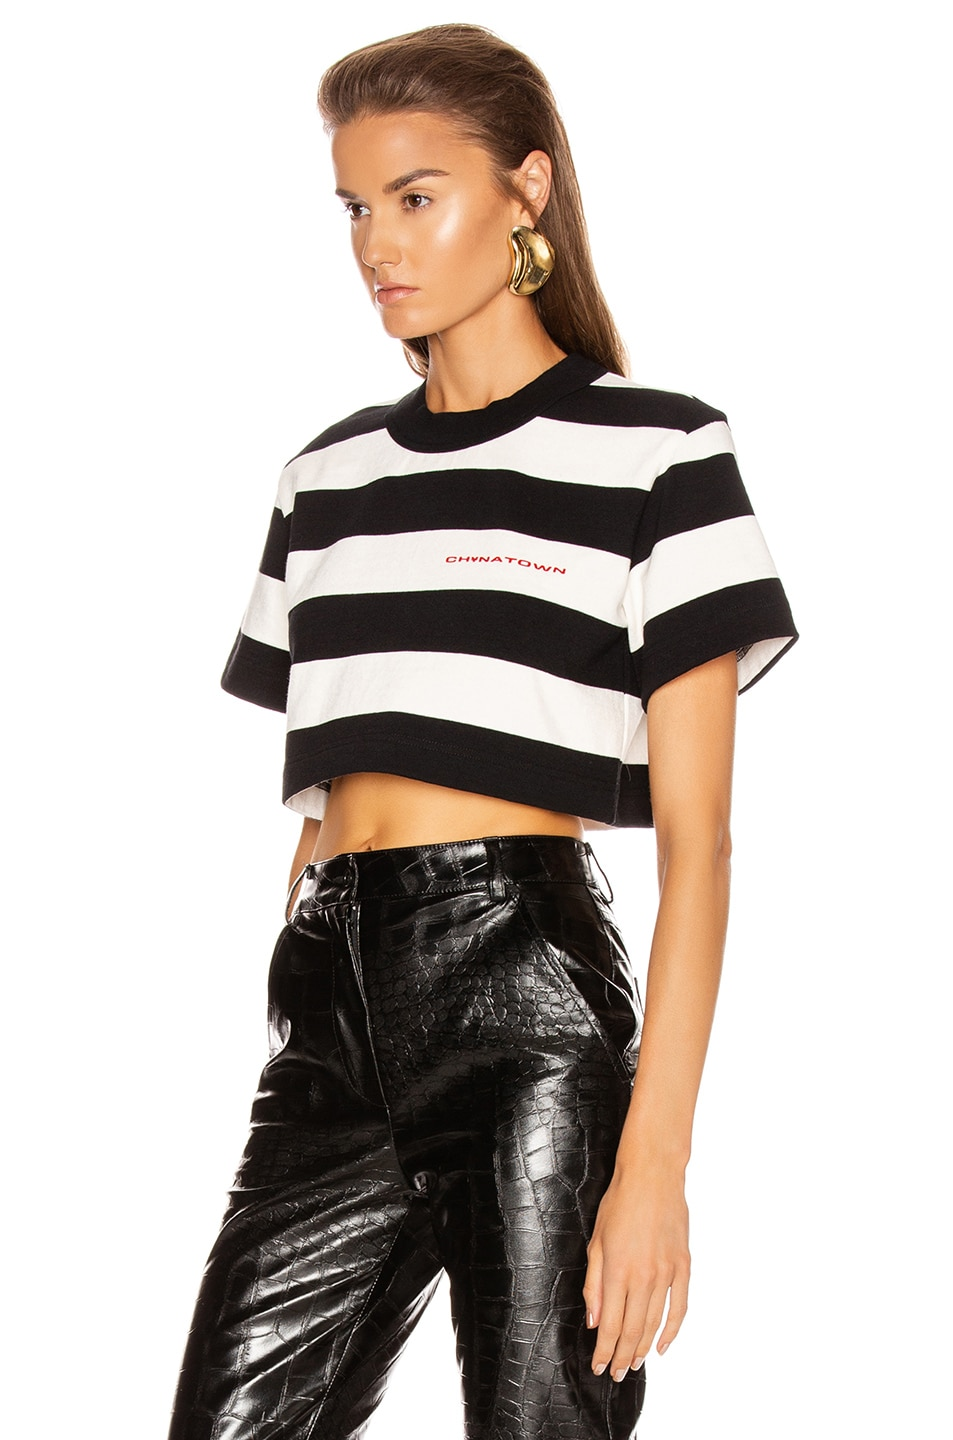 Image 3 of Alexander Wang Chynatown Stripped Cropped Tee in Black & White